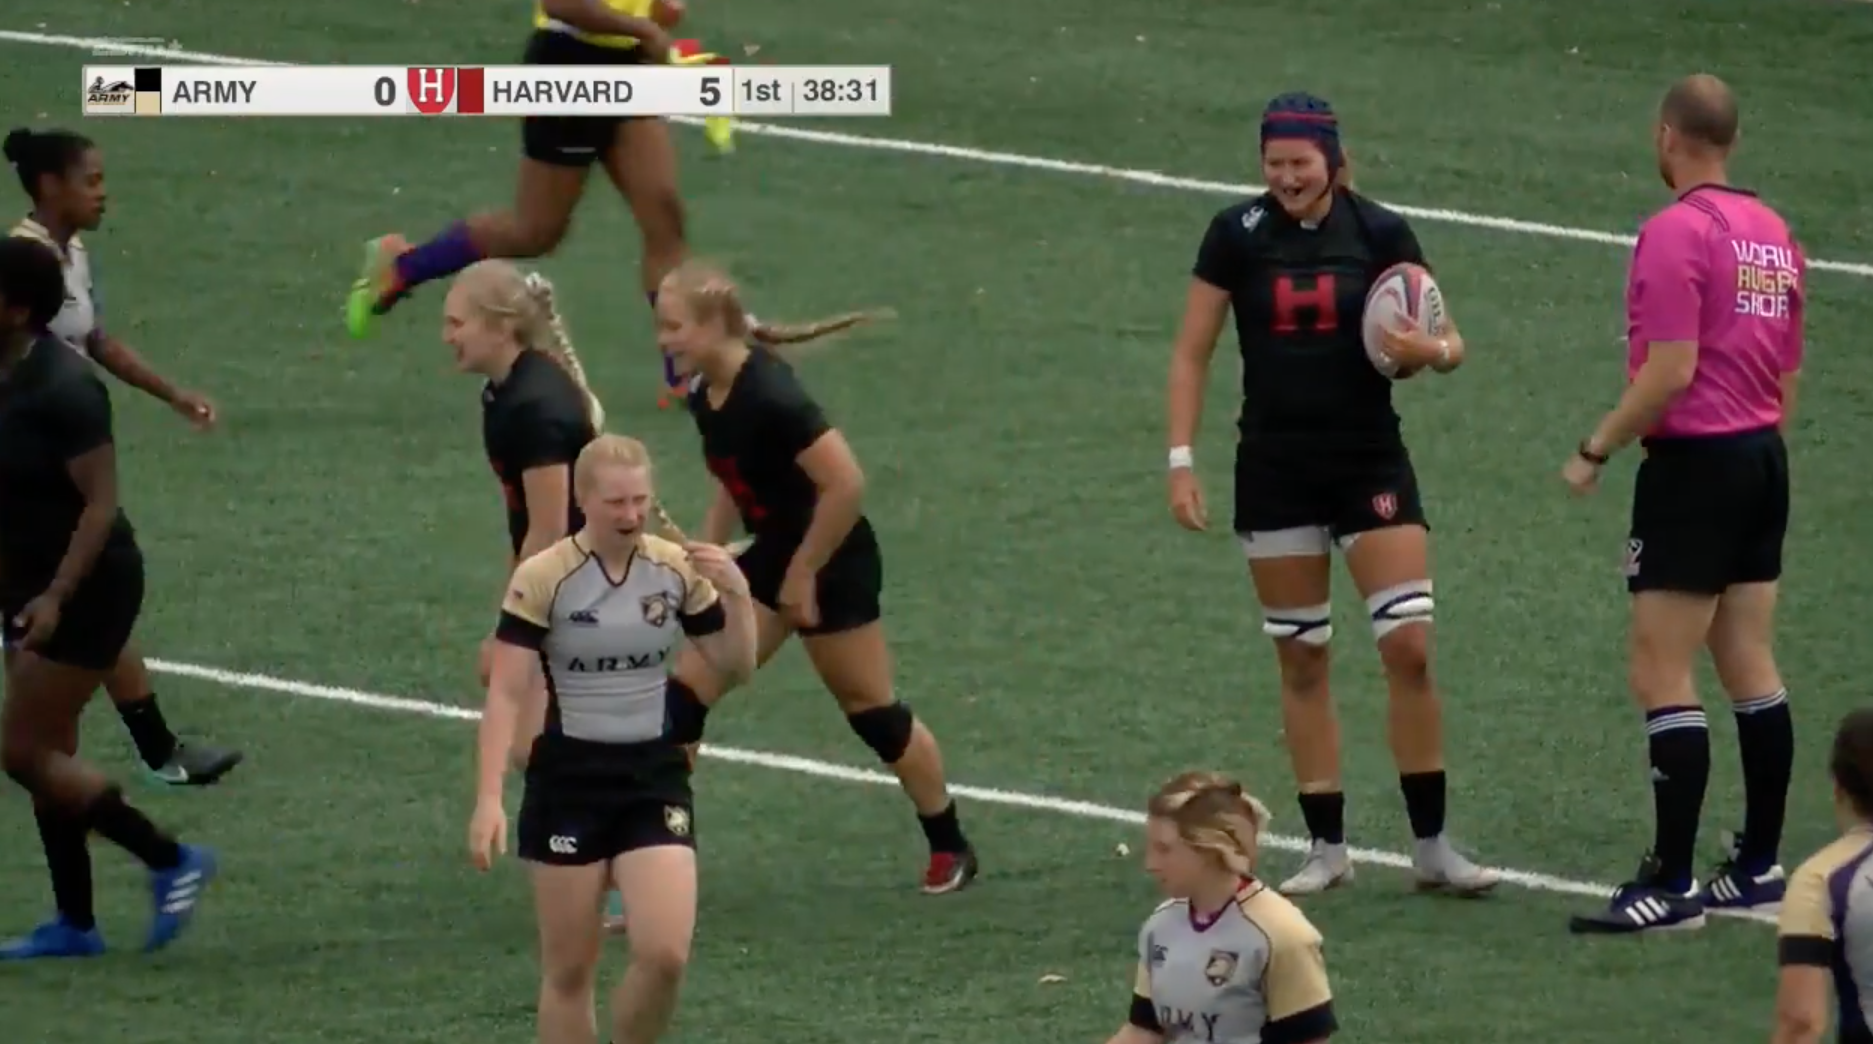 Harvard women's rugby team (2-0) captured its second win of the season by defeating Army West Point (0-1), 28-17